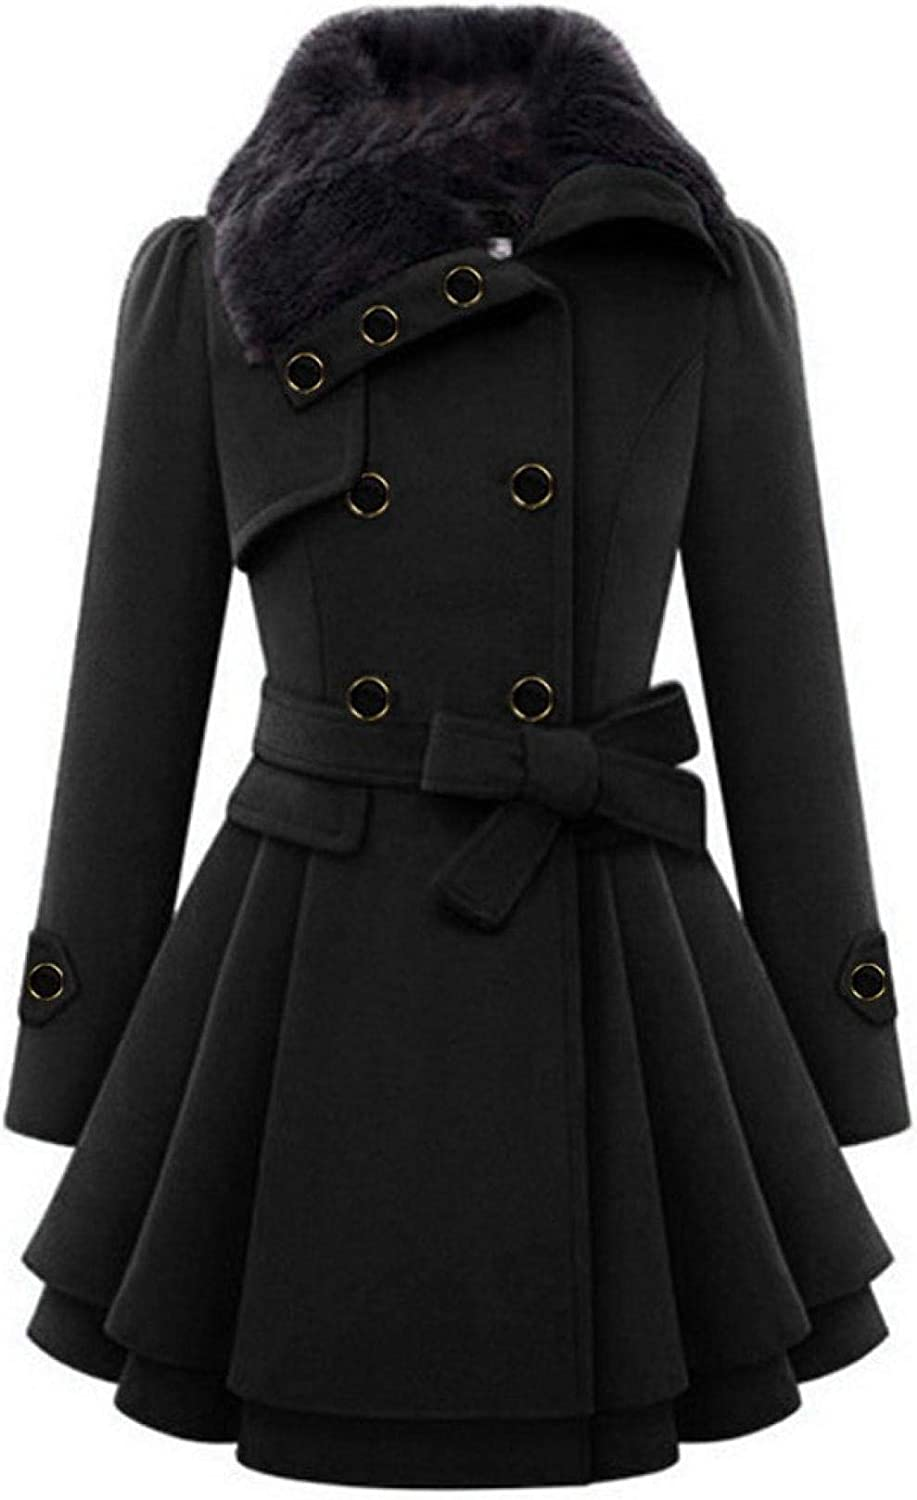 Amaeen Coats for Womens Fashion Double Breasted Belt Coat Mid Length Plus Cashmere Overcoat Loose Soft Casual Jacket